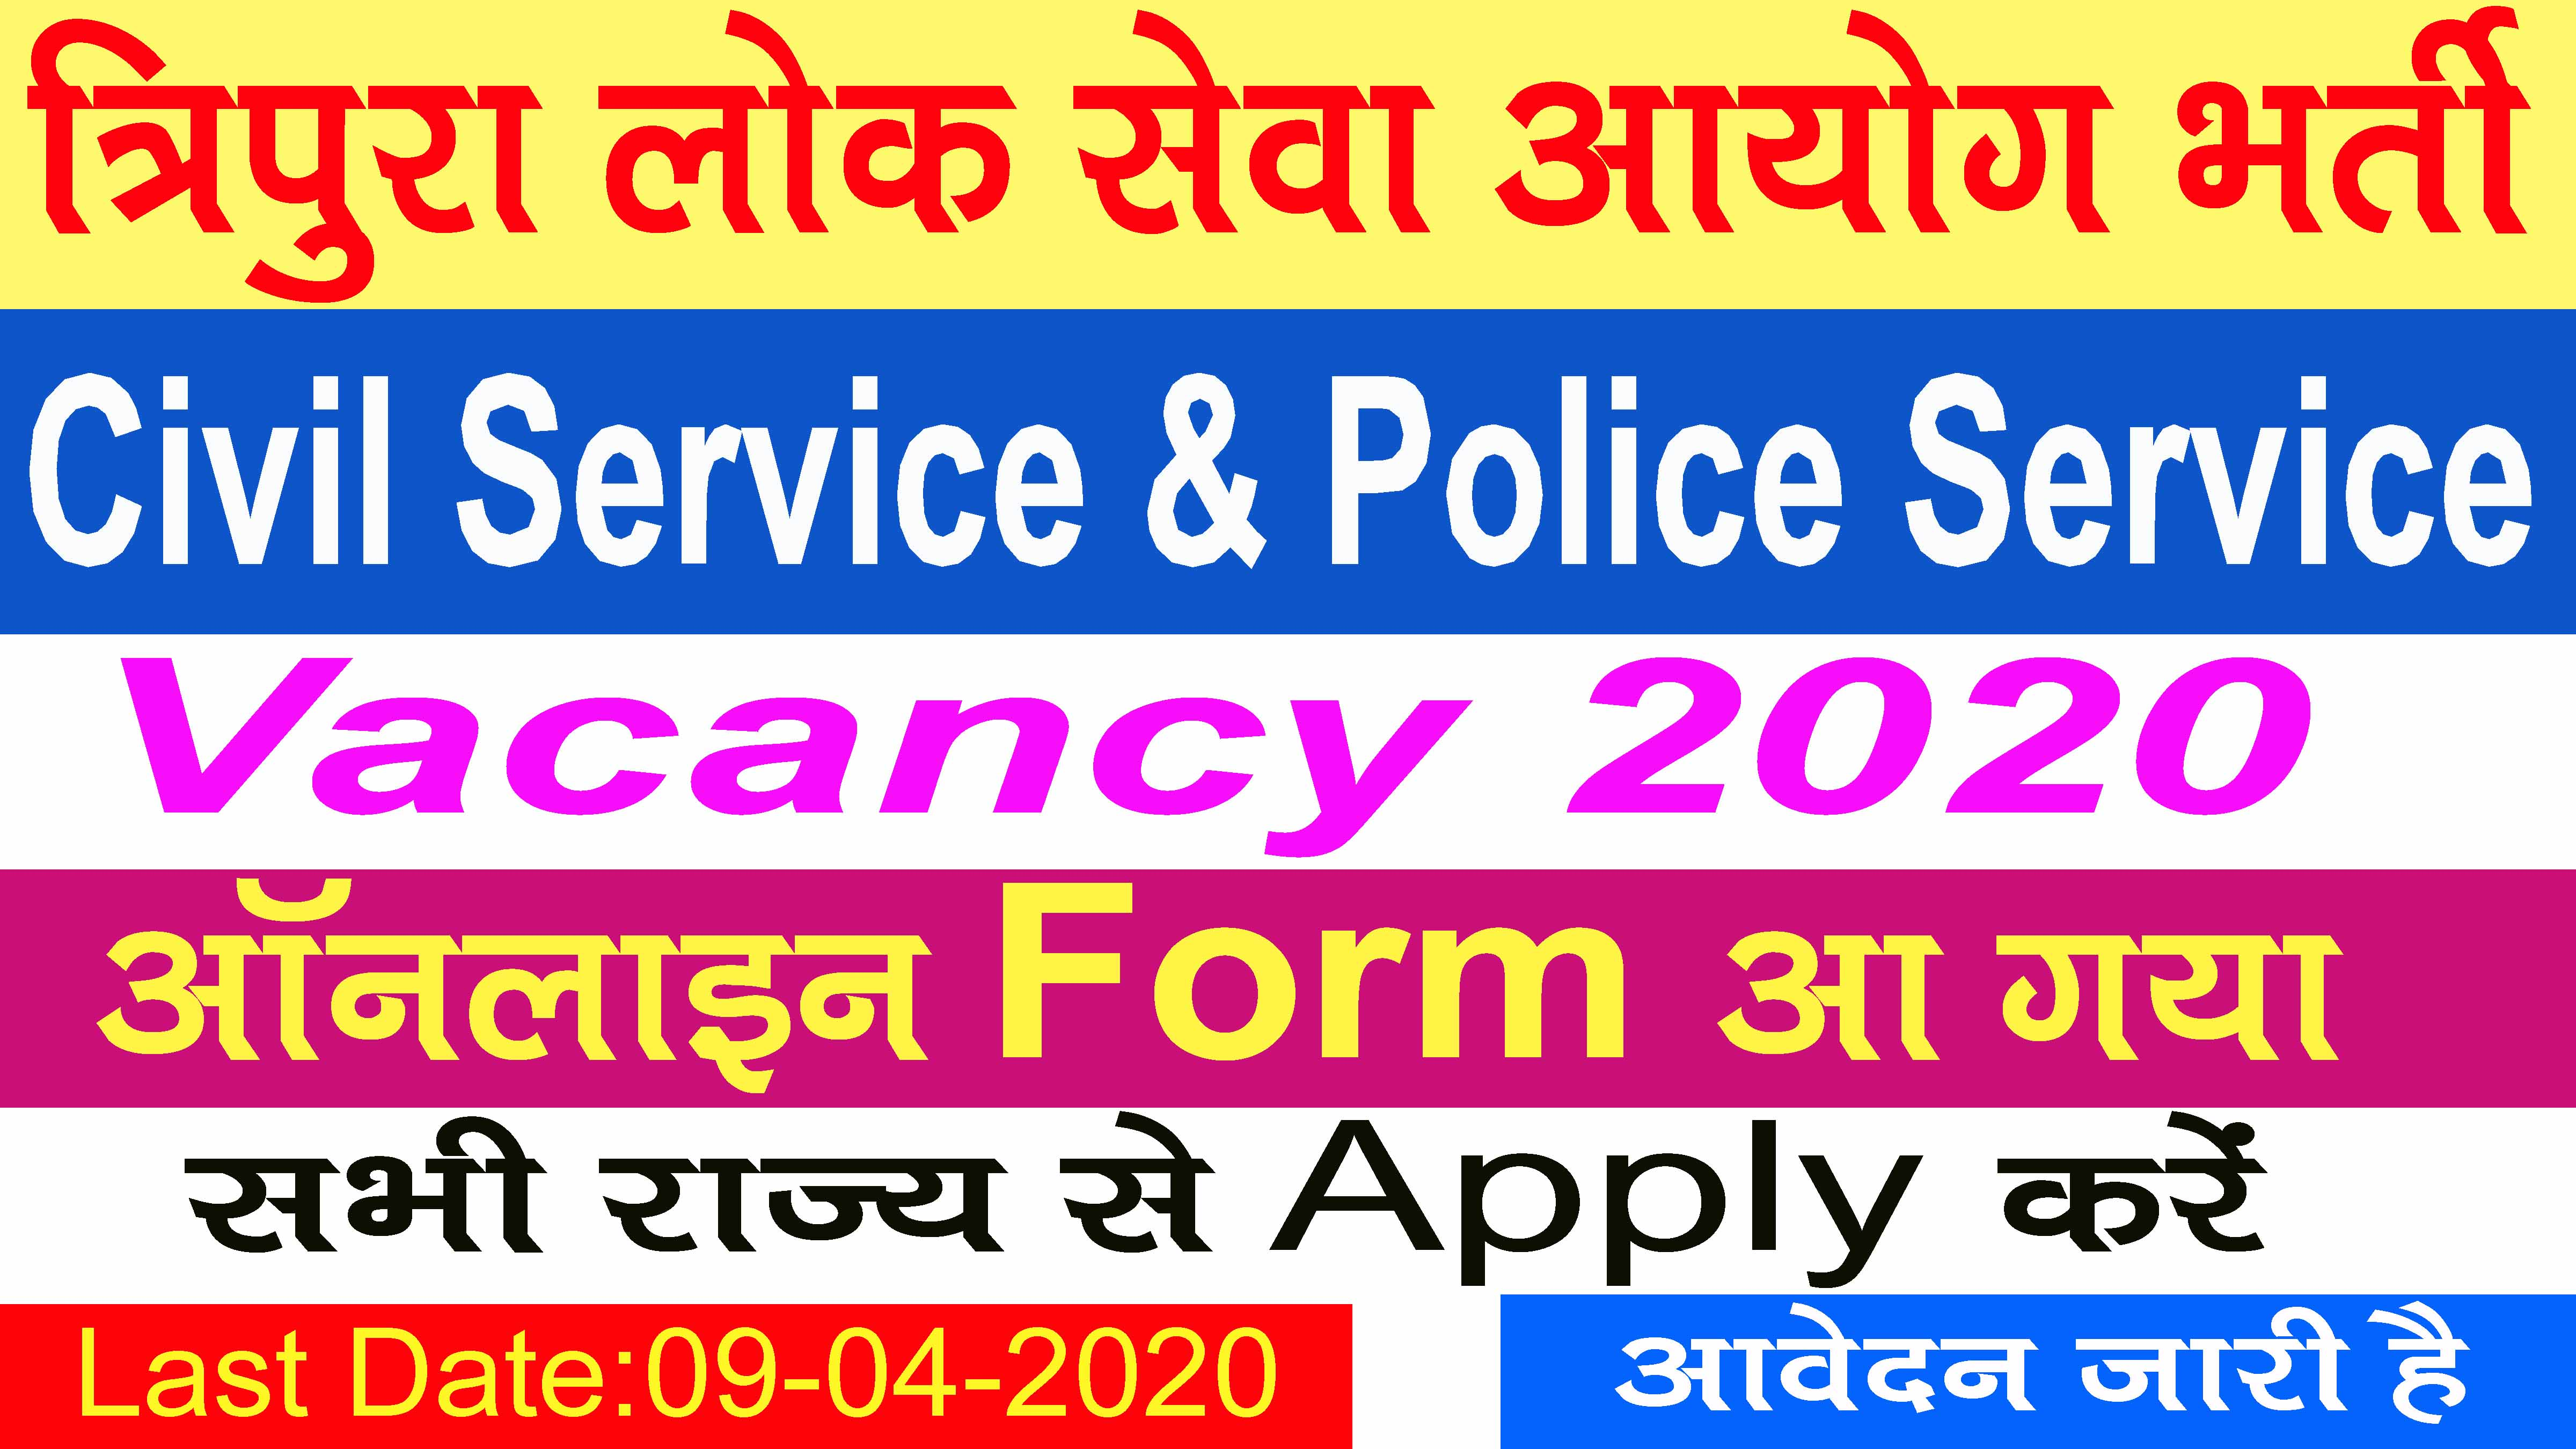 TPSC Recruitment 2020 Notification